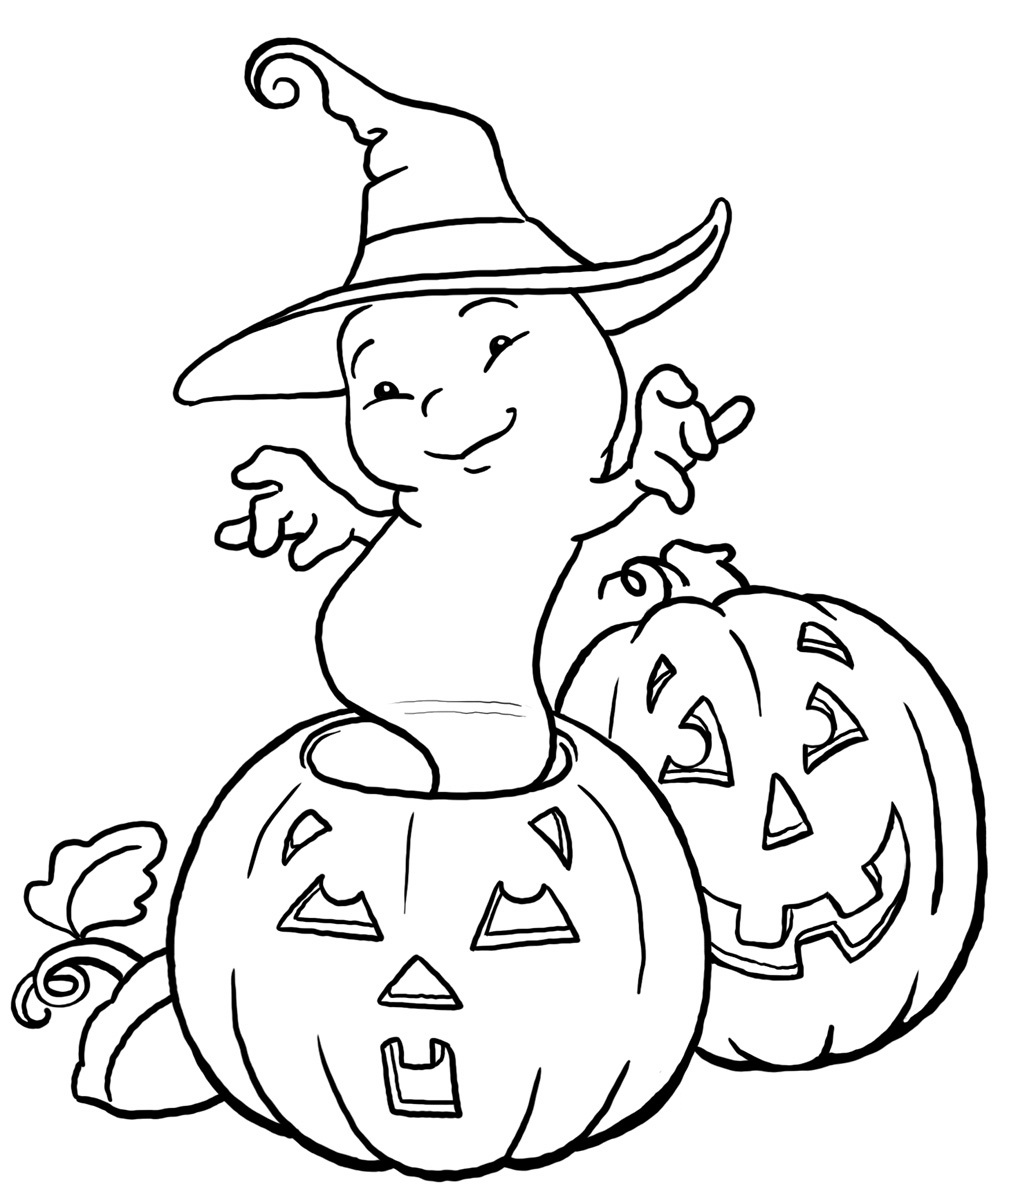 Free printable ghost coloring pages for kids for Cute halloween coloring pages free